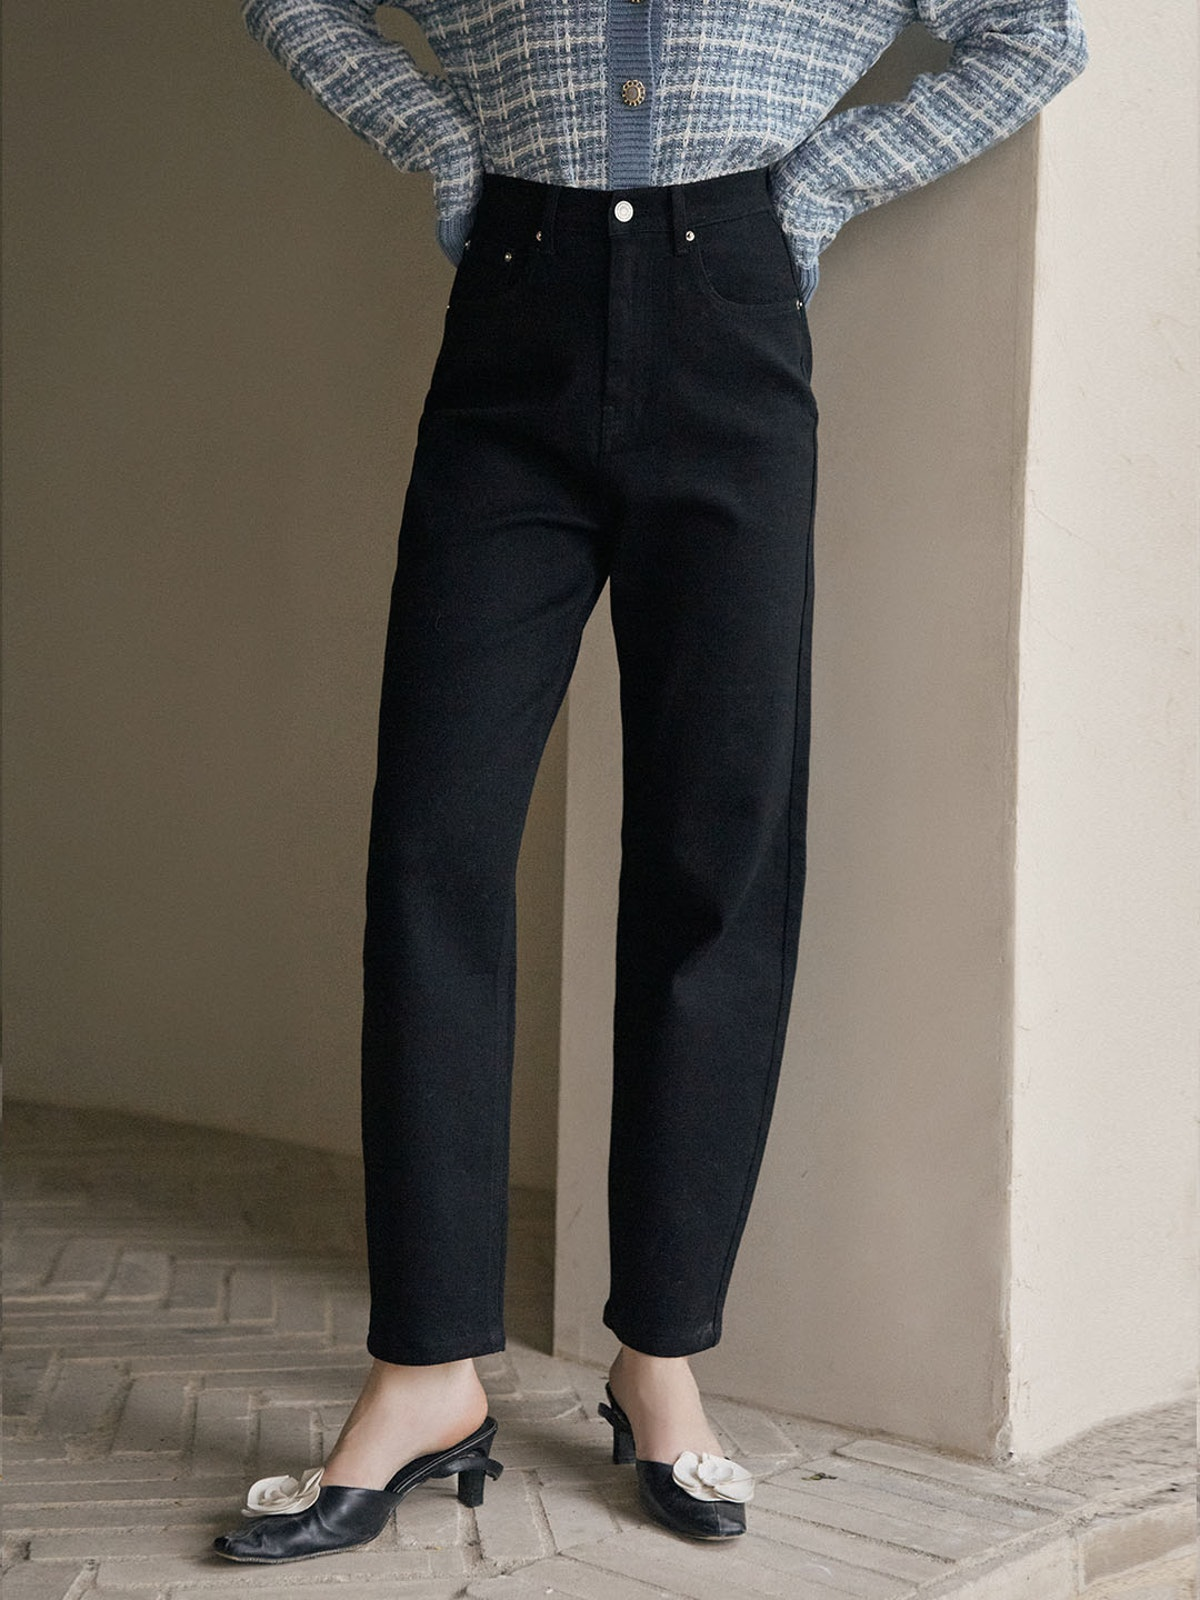 Evelyn Cotton Jeans